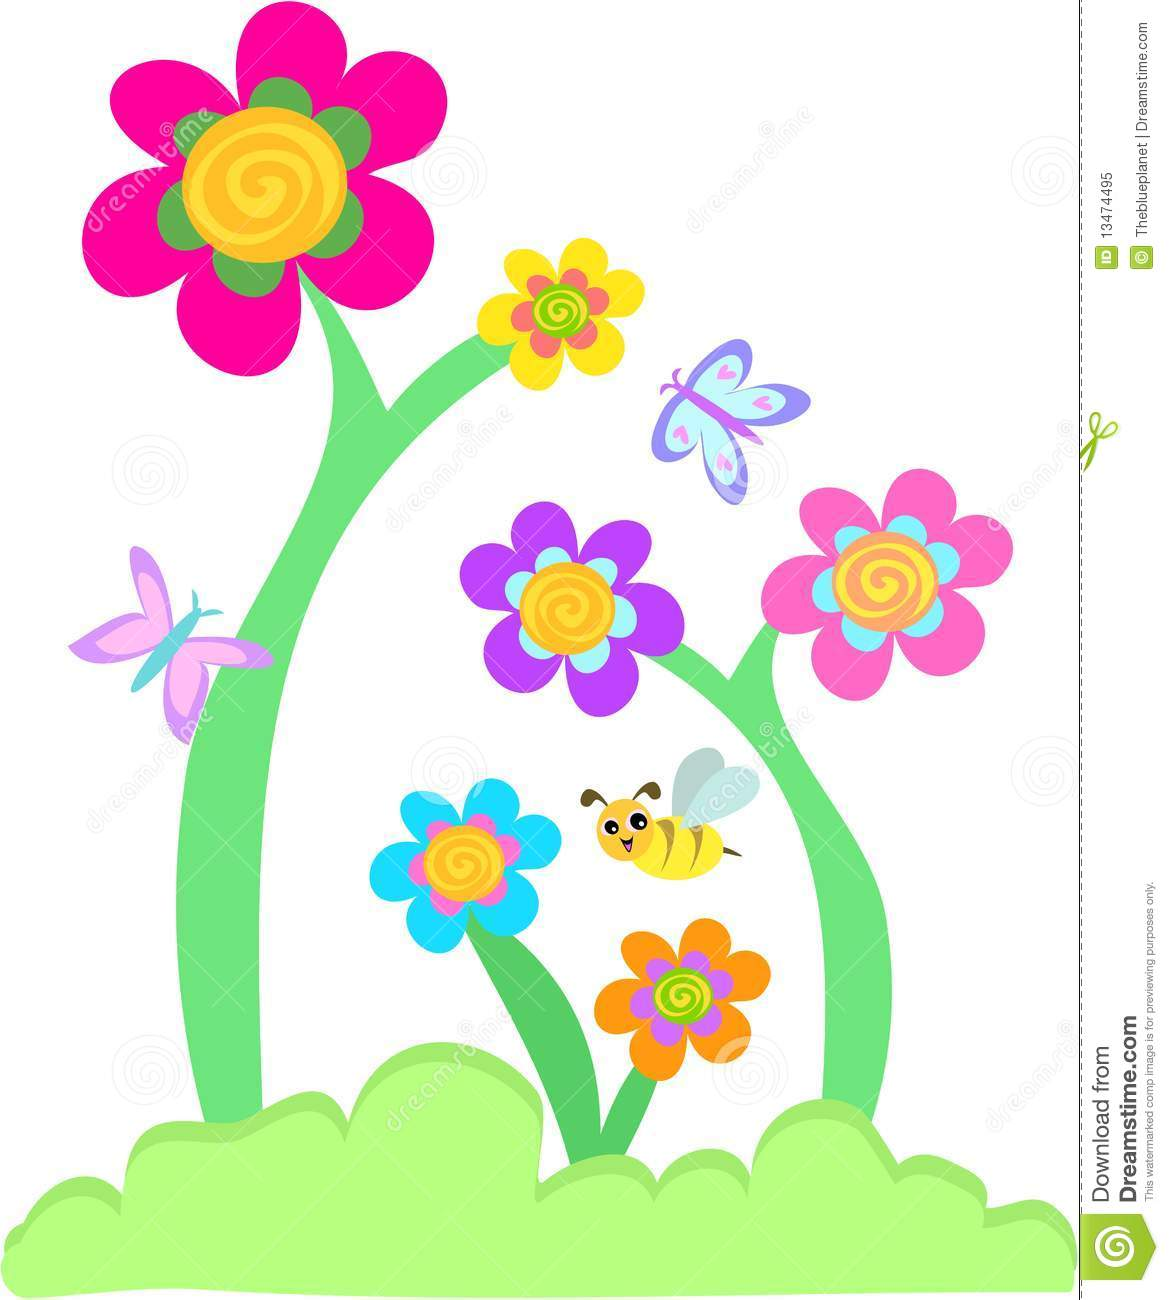 Floral clipart whimsical Clip garden collection the flower